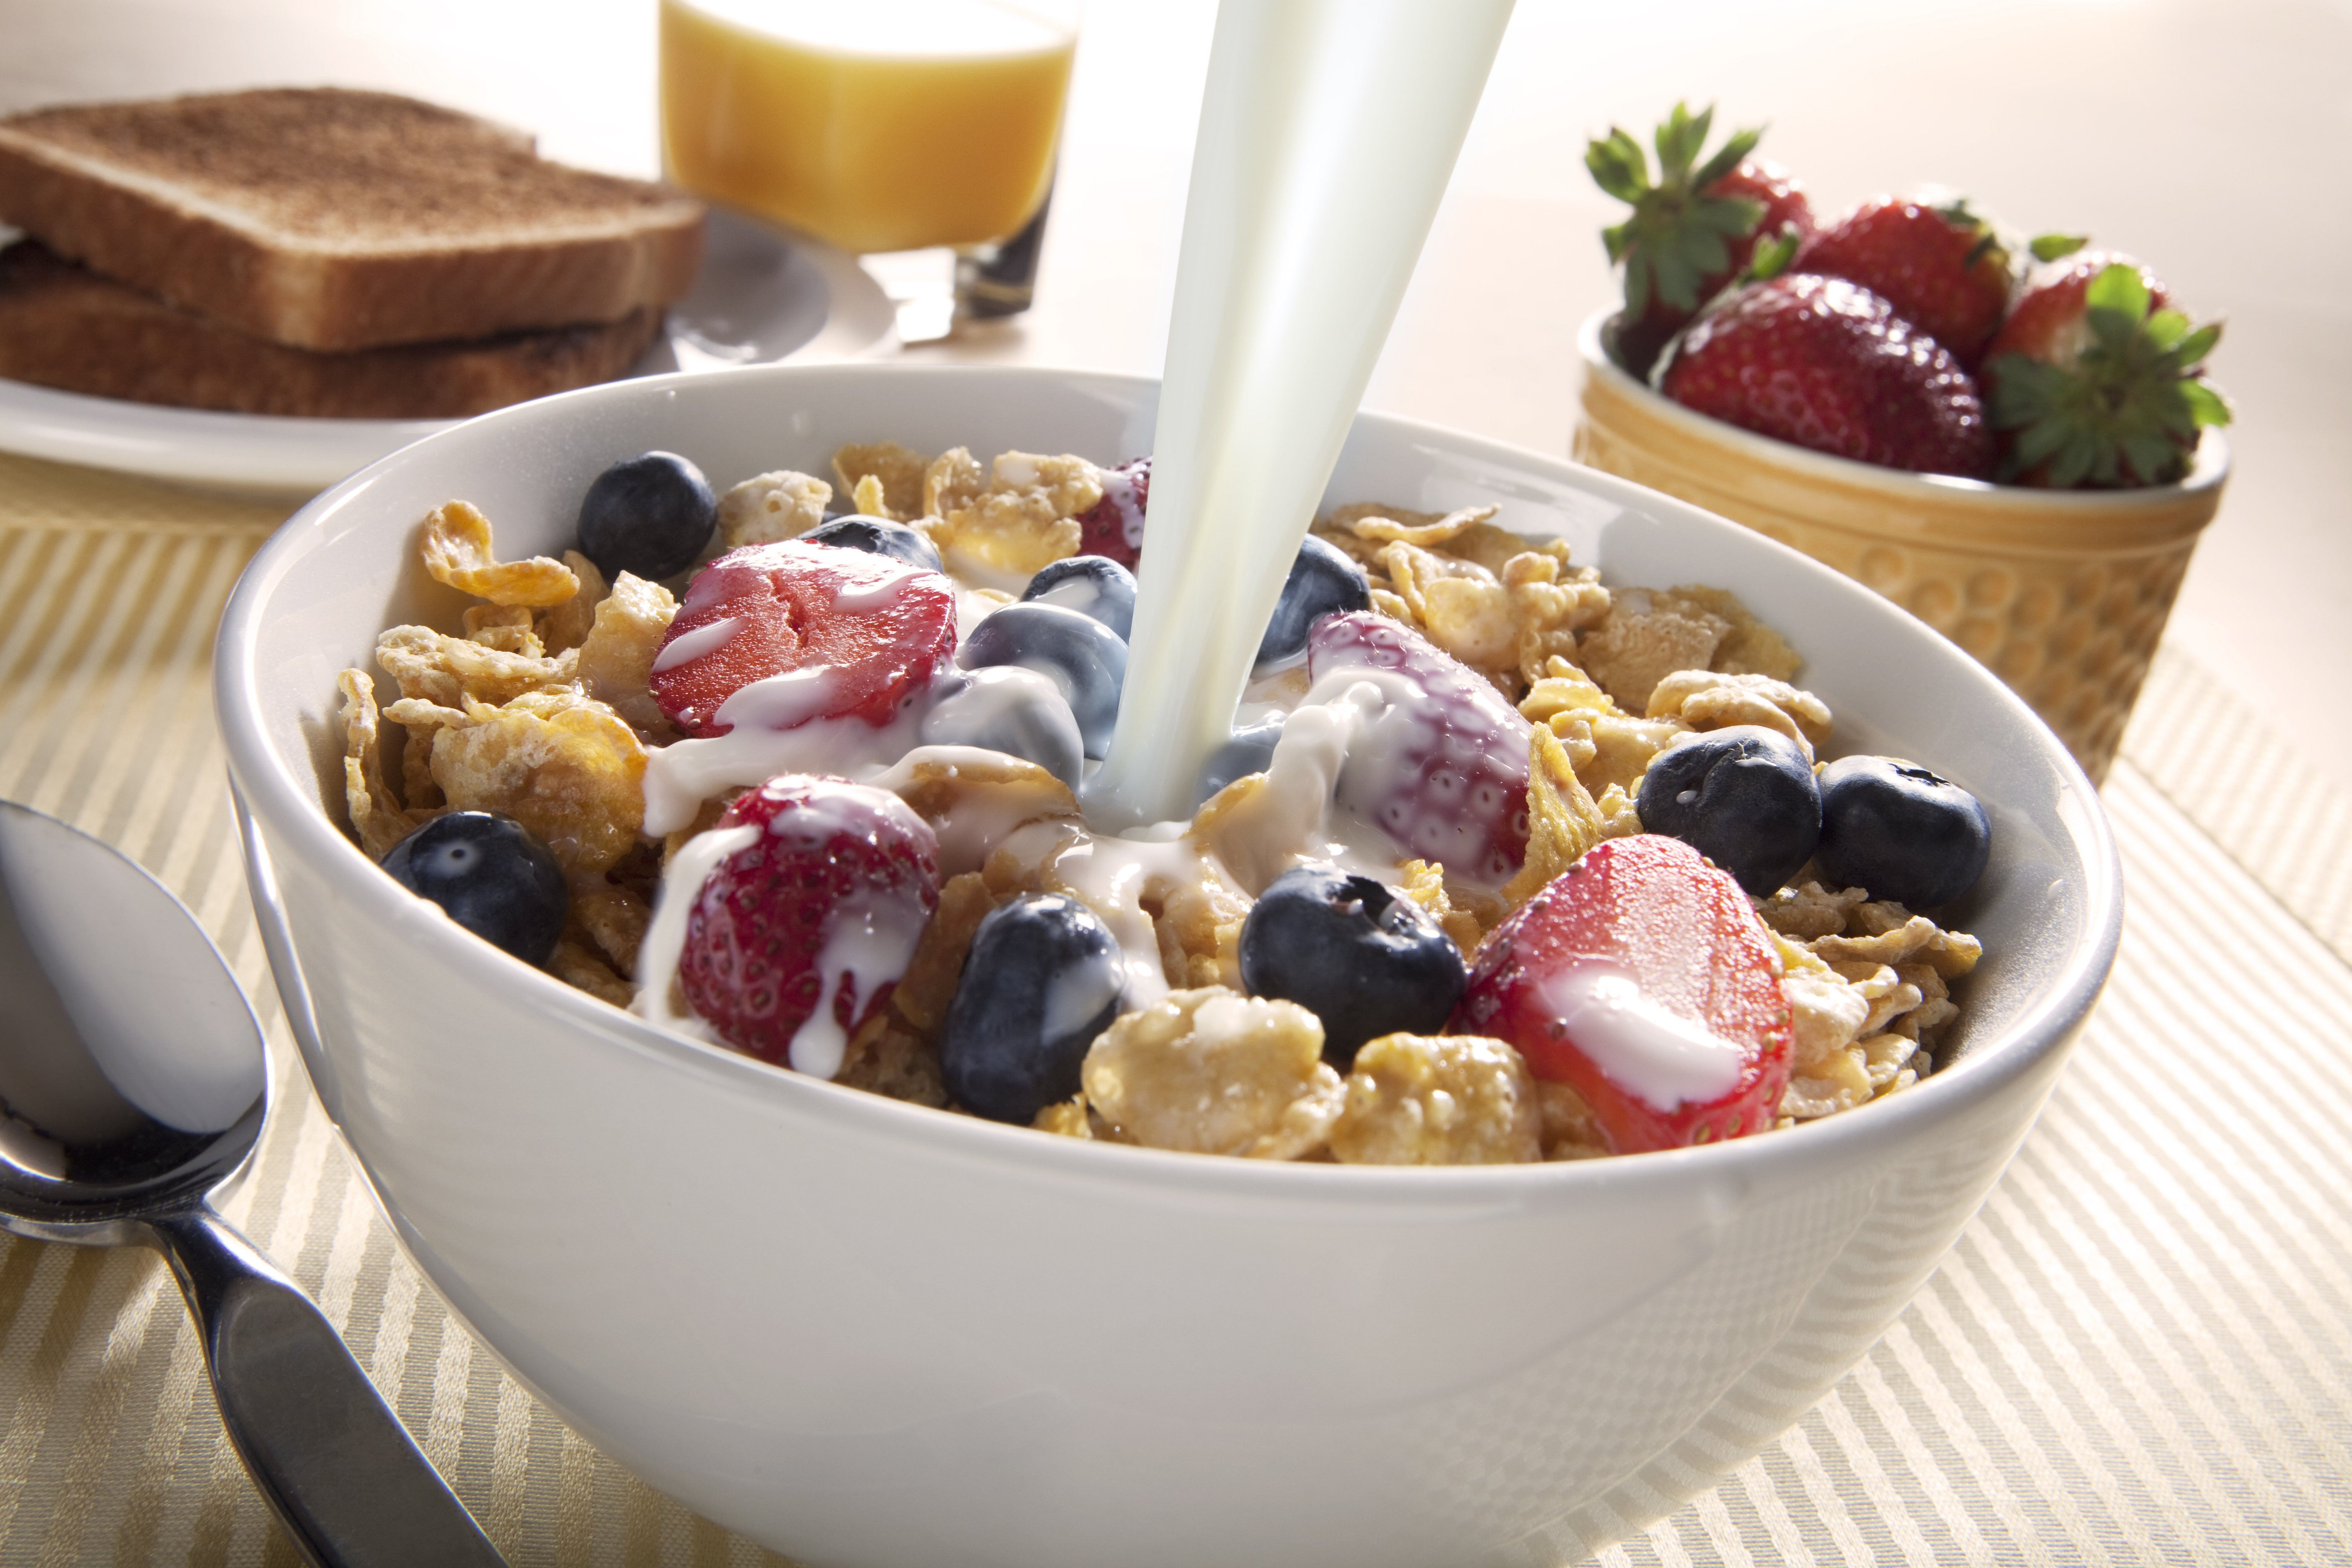 Healthy Breakfast Cereals  People Who Put Ice Cubes in Breakfast Cereal Are Not Alone